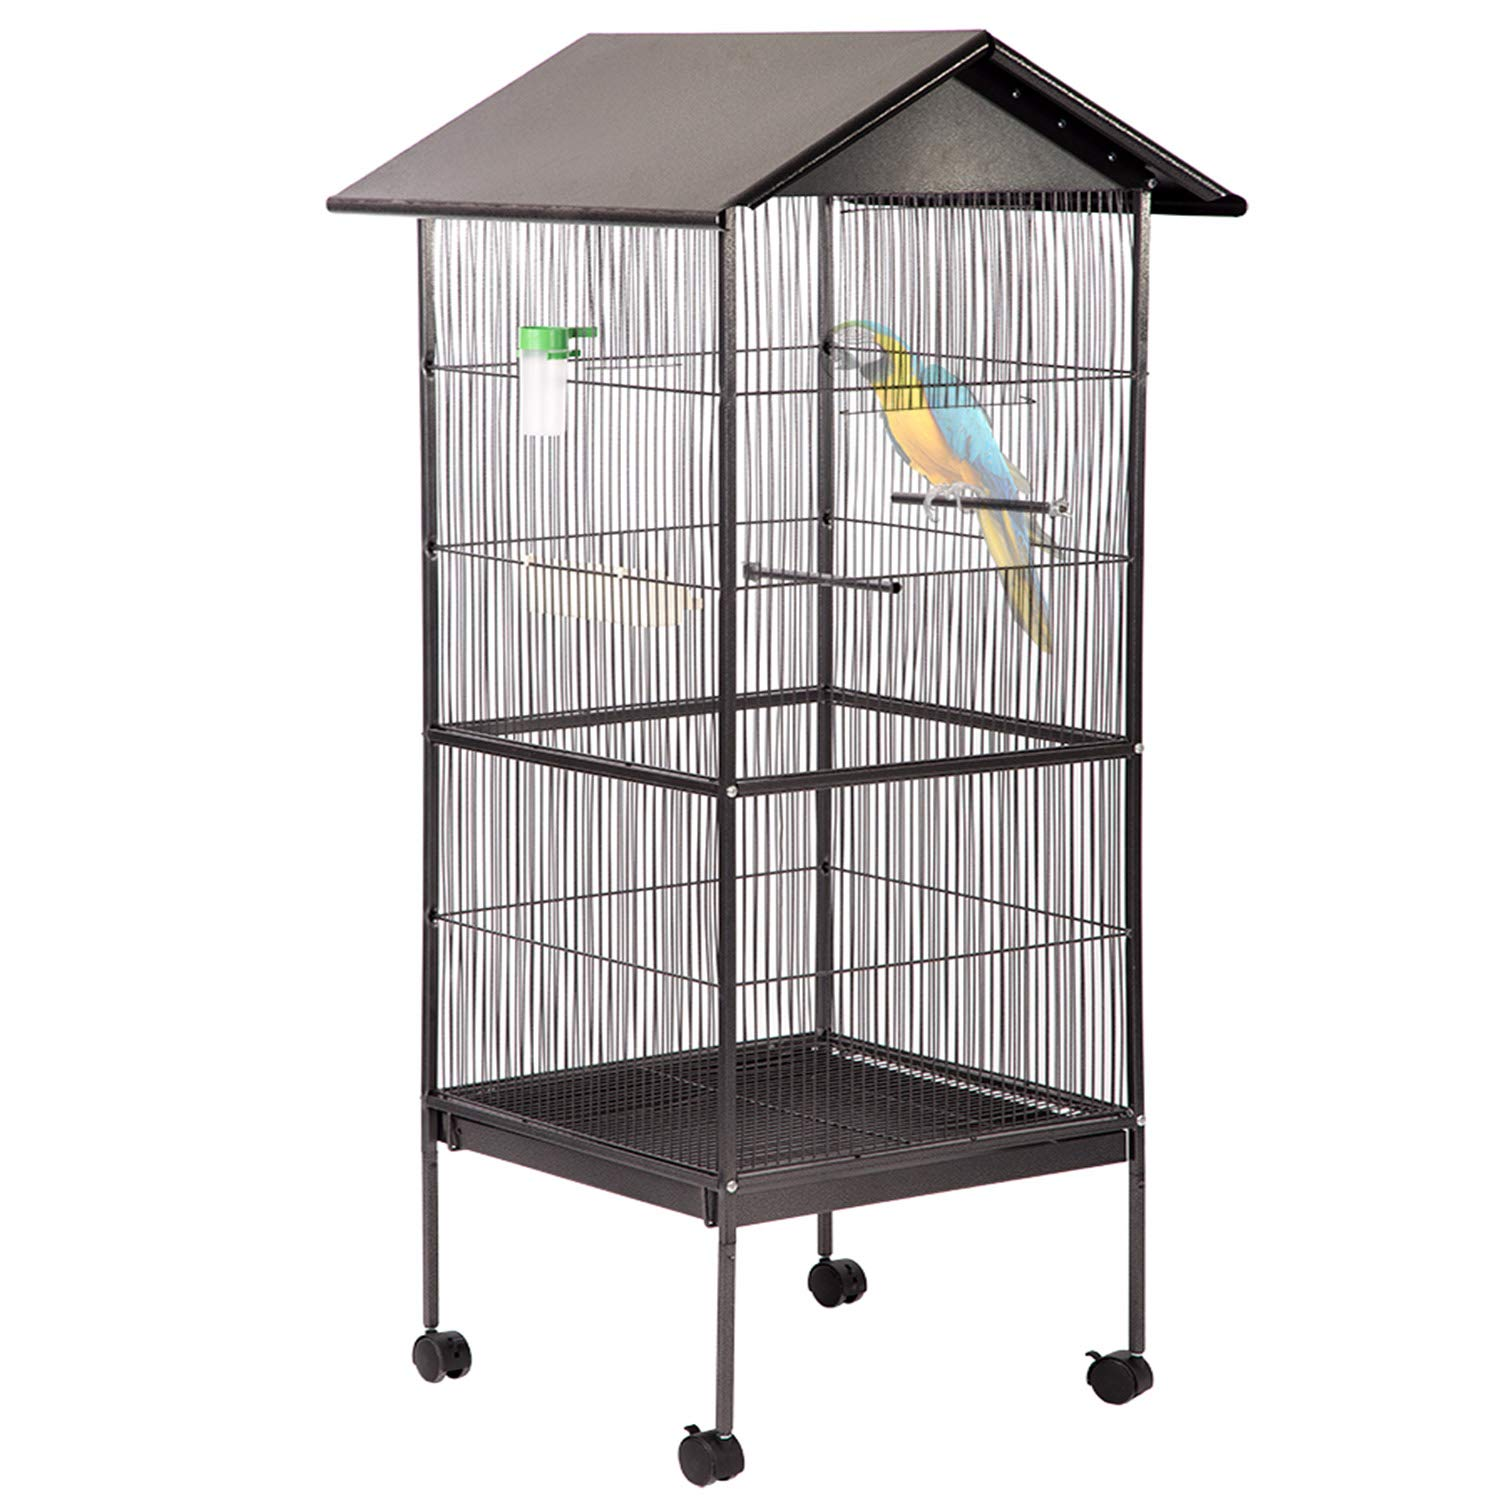 BestPet Large Bird Cage Suger Glider Cage Heavy Duty Conure Parrot Finch Flight Cage for Budgie Parakeet Cockatoo Cocatiel with Wooden Perch Storage Shelf, 61 inches by BestPet